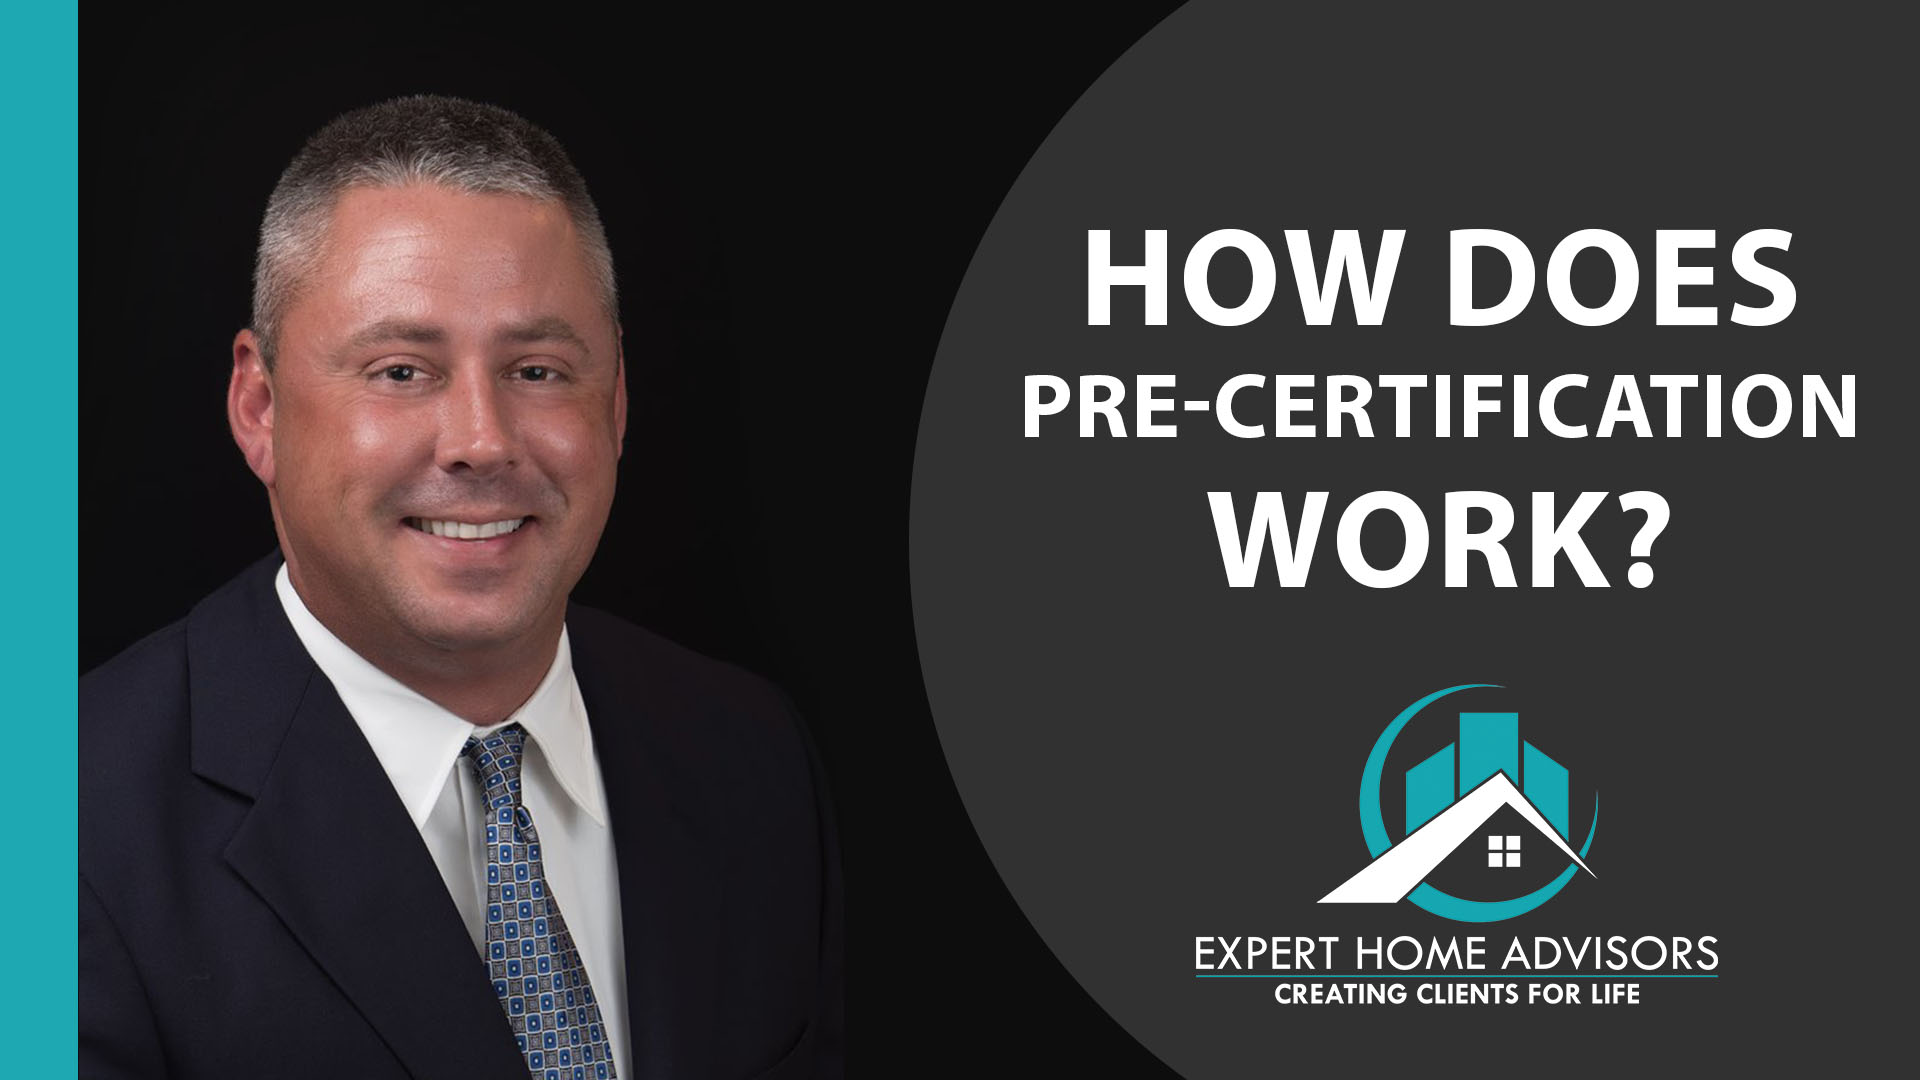 The Benefits of the Pre-Certification Process